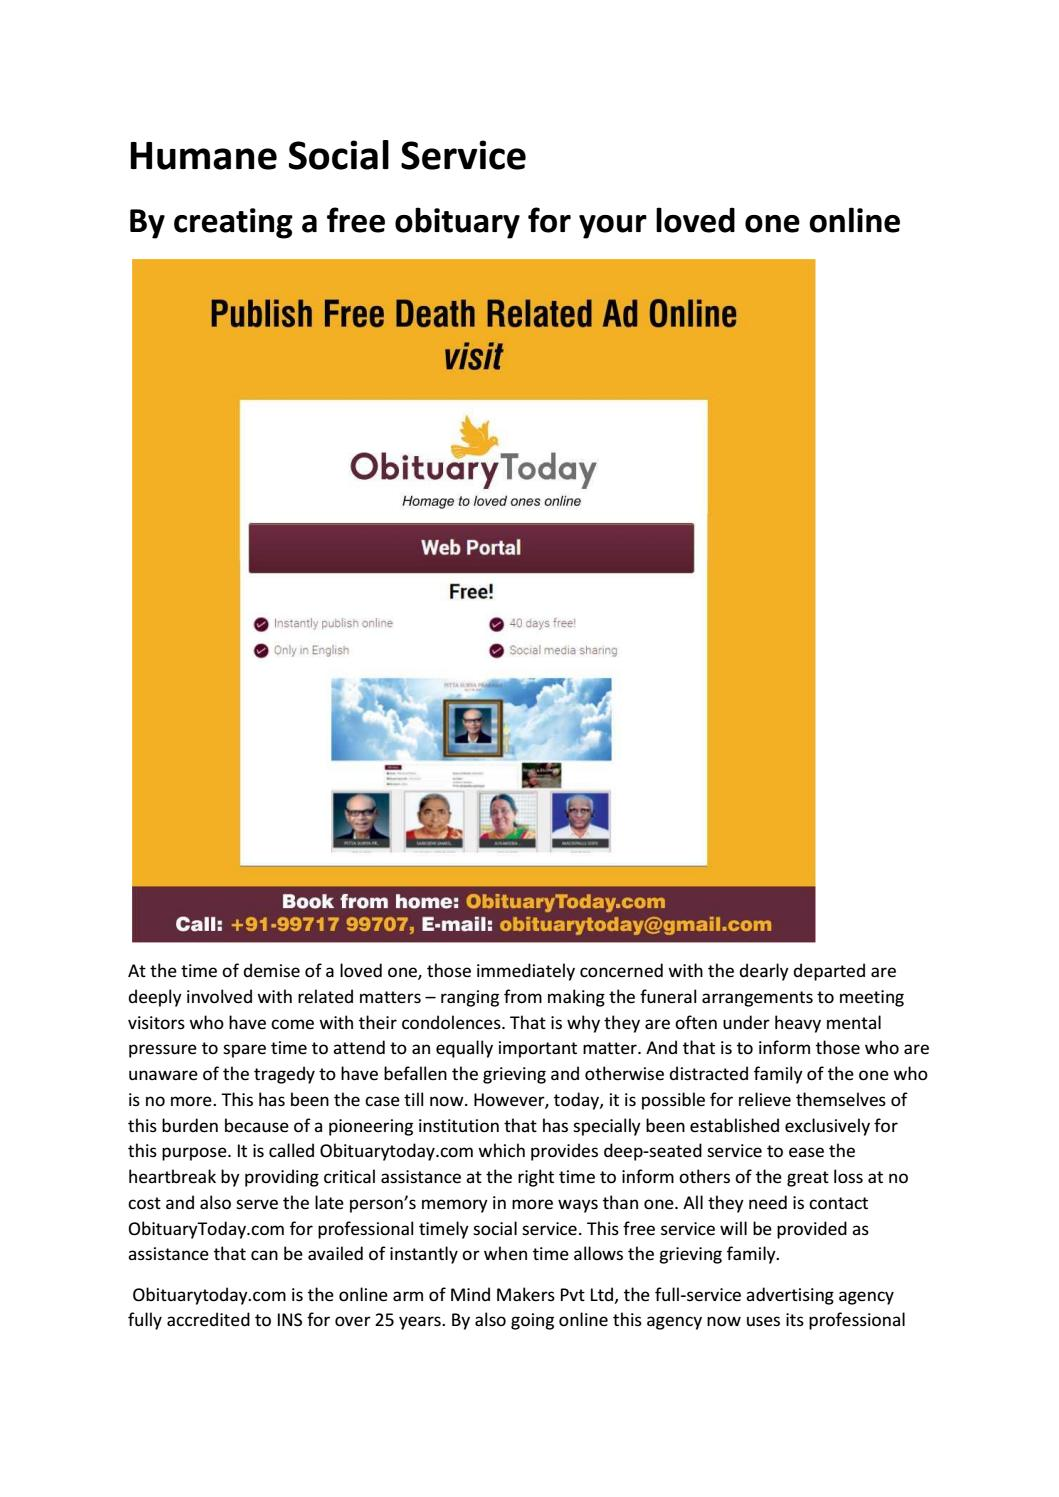 By creating a free obituary for your loved one online by